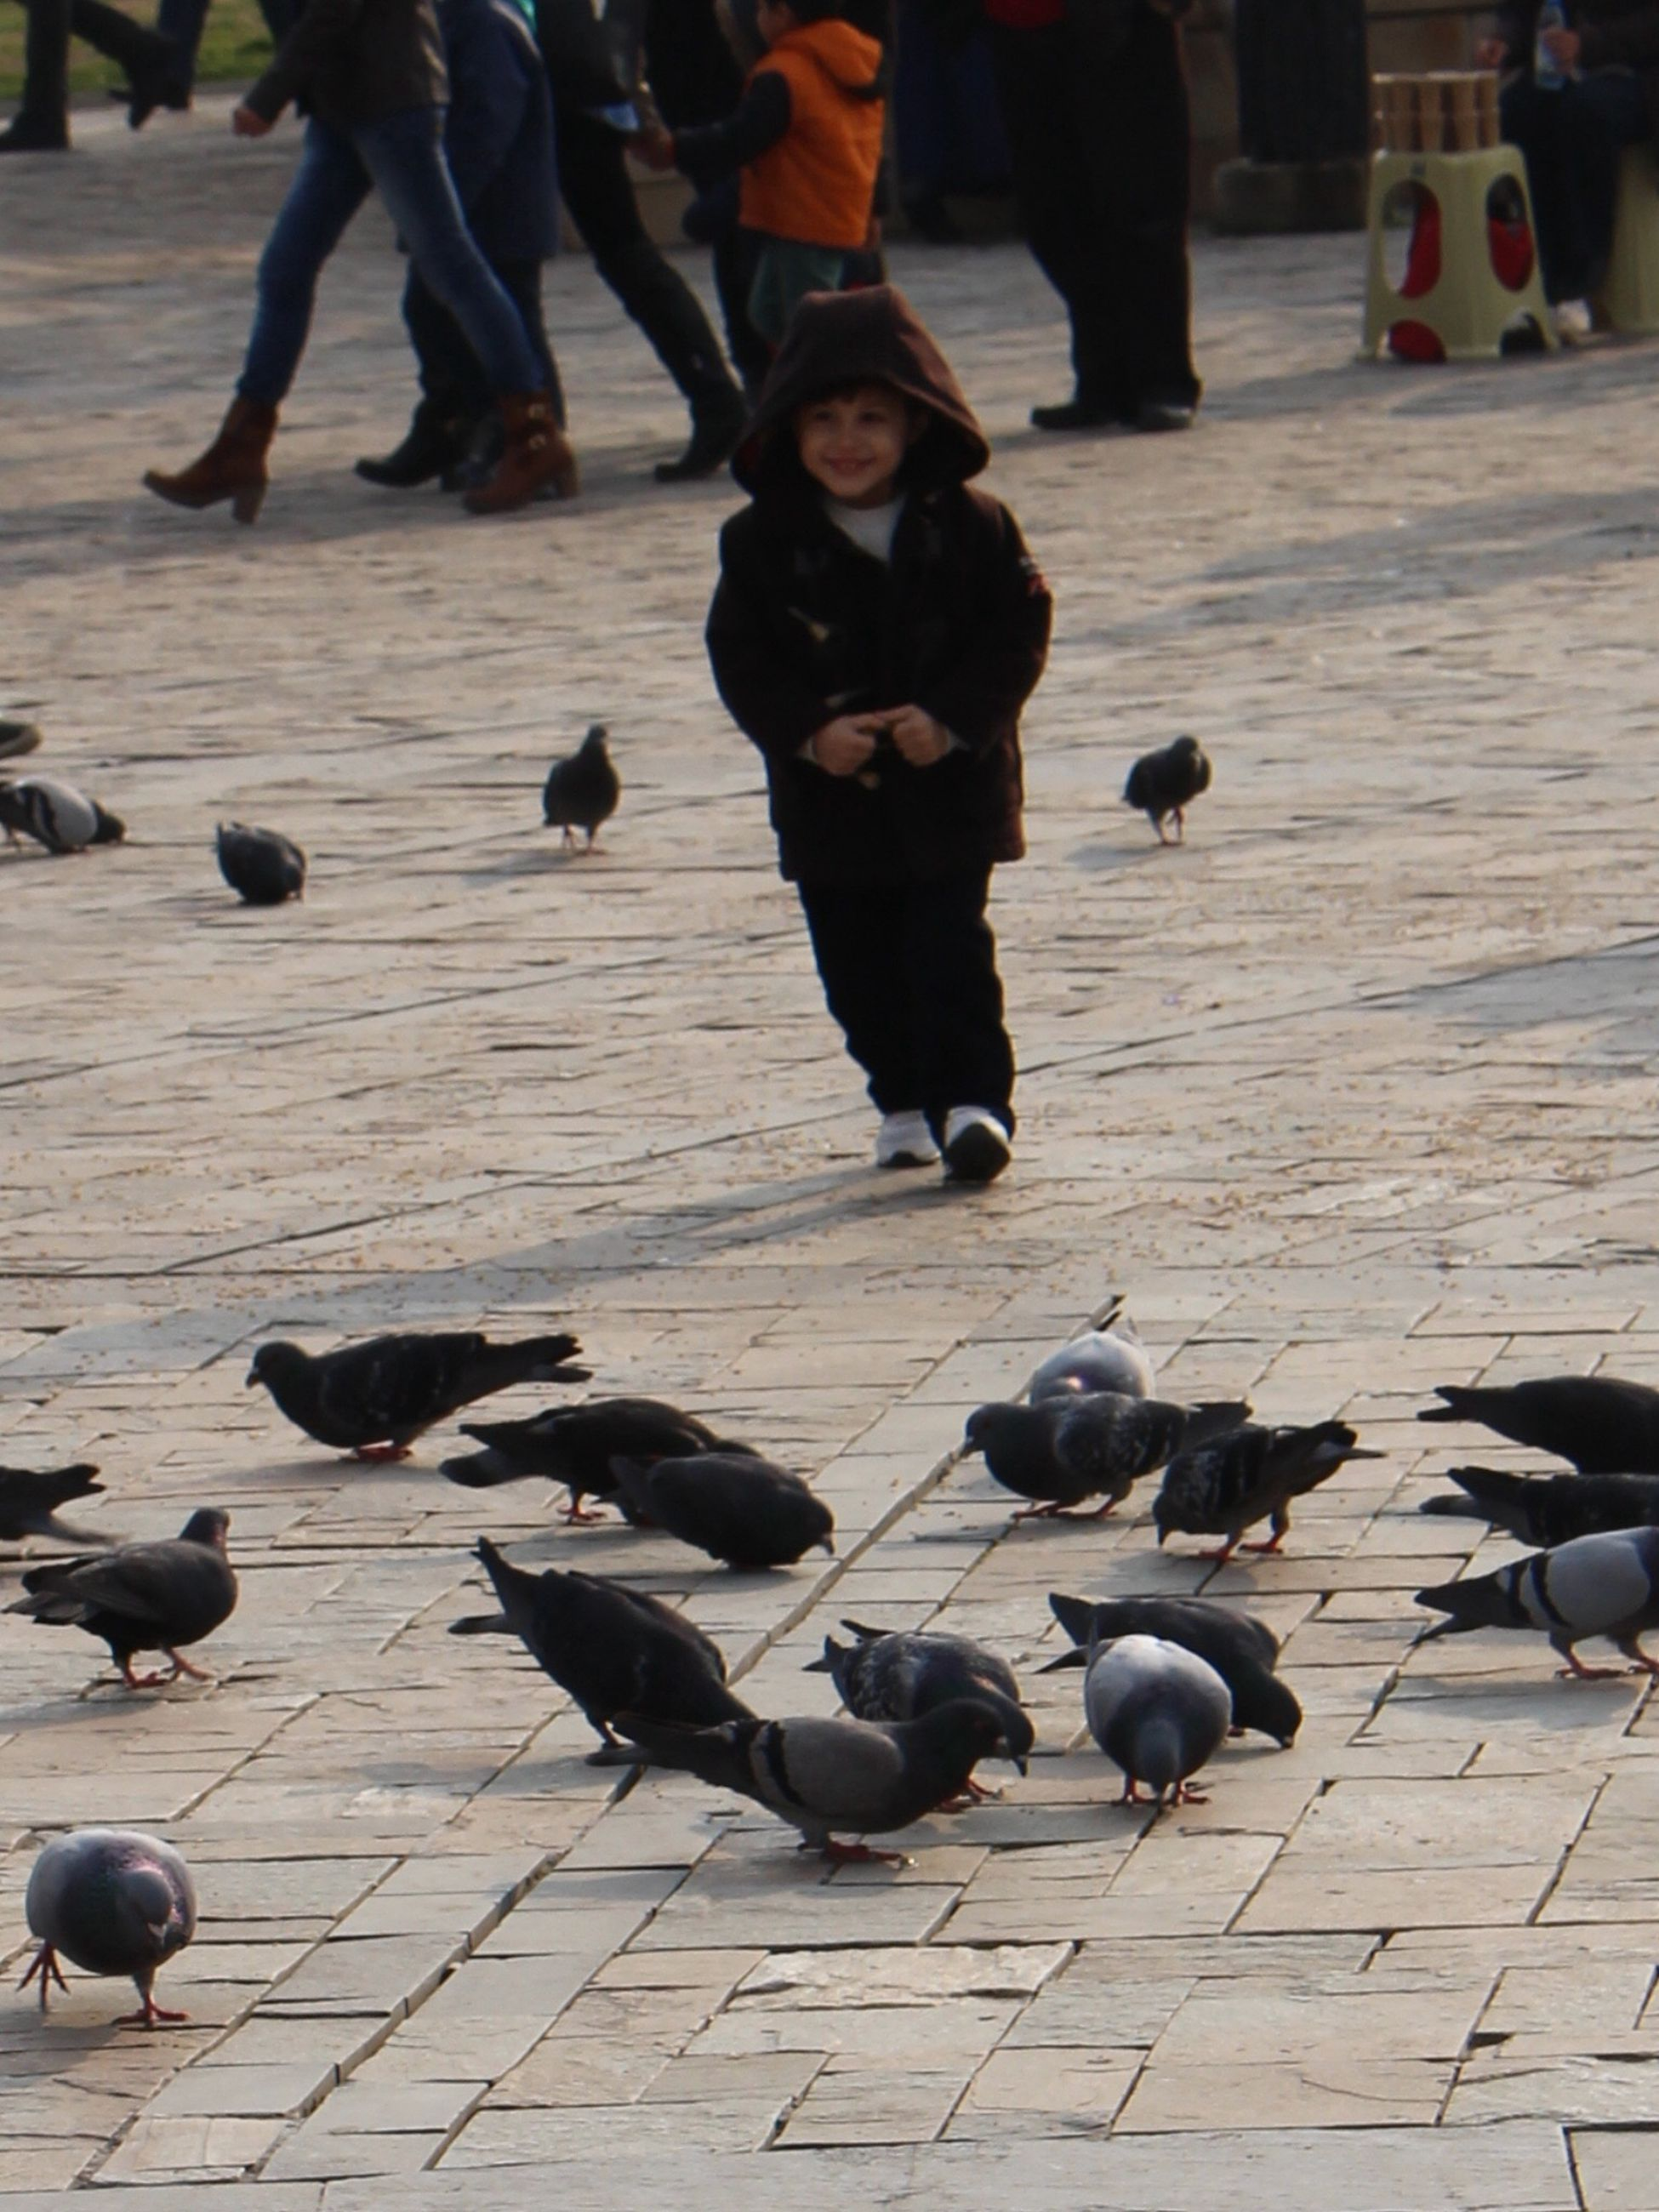 animal themes, bird, pigeon, animals in the wild, wildlife, person, street, lifestyles, togetherness, cobblestone, walking, men, large group of people, leisure activity, full length, flock of birds, outdoors, footpath